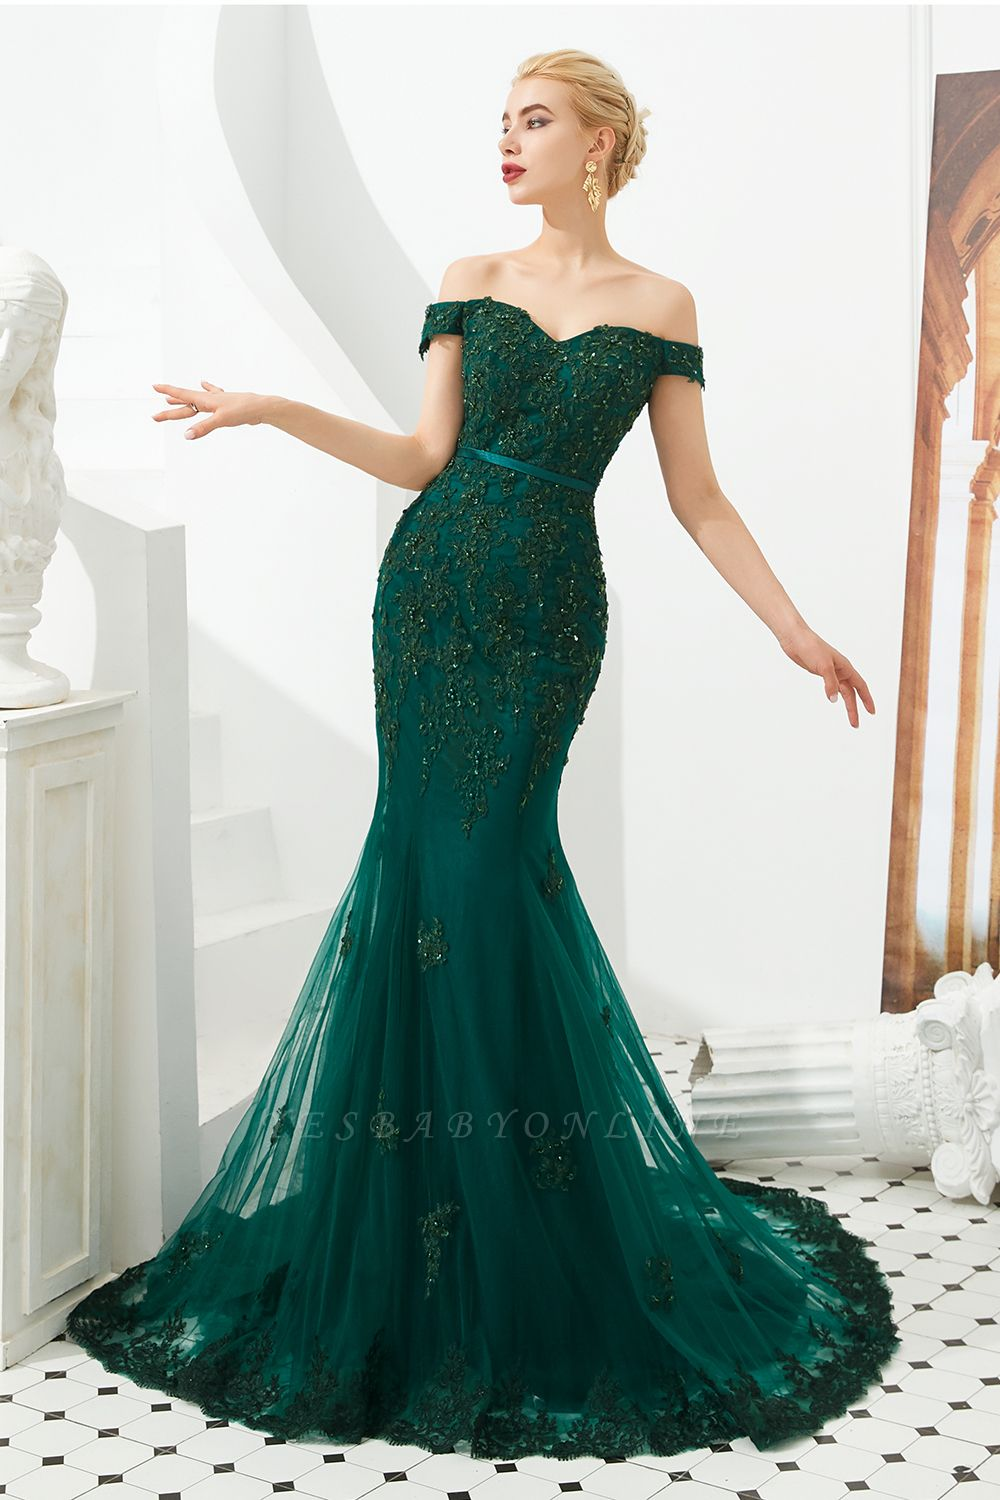 Gorgeous Off the Shoulder Jade Long Mermaid Prom Dresses | Floor Length Evening Dresses